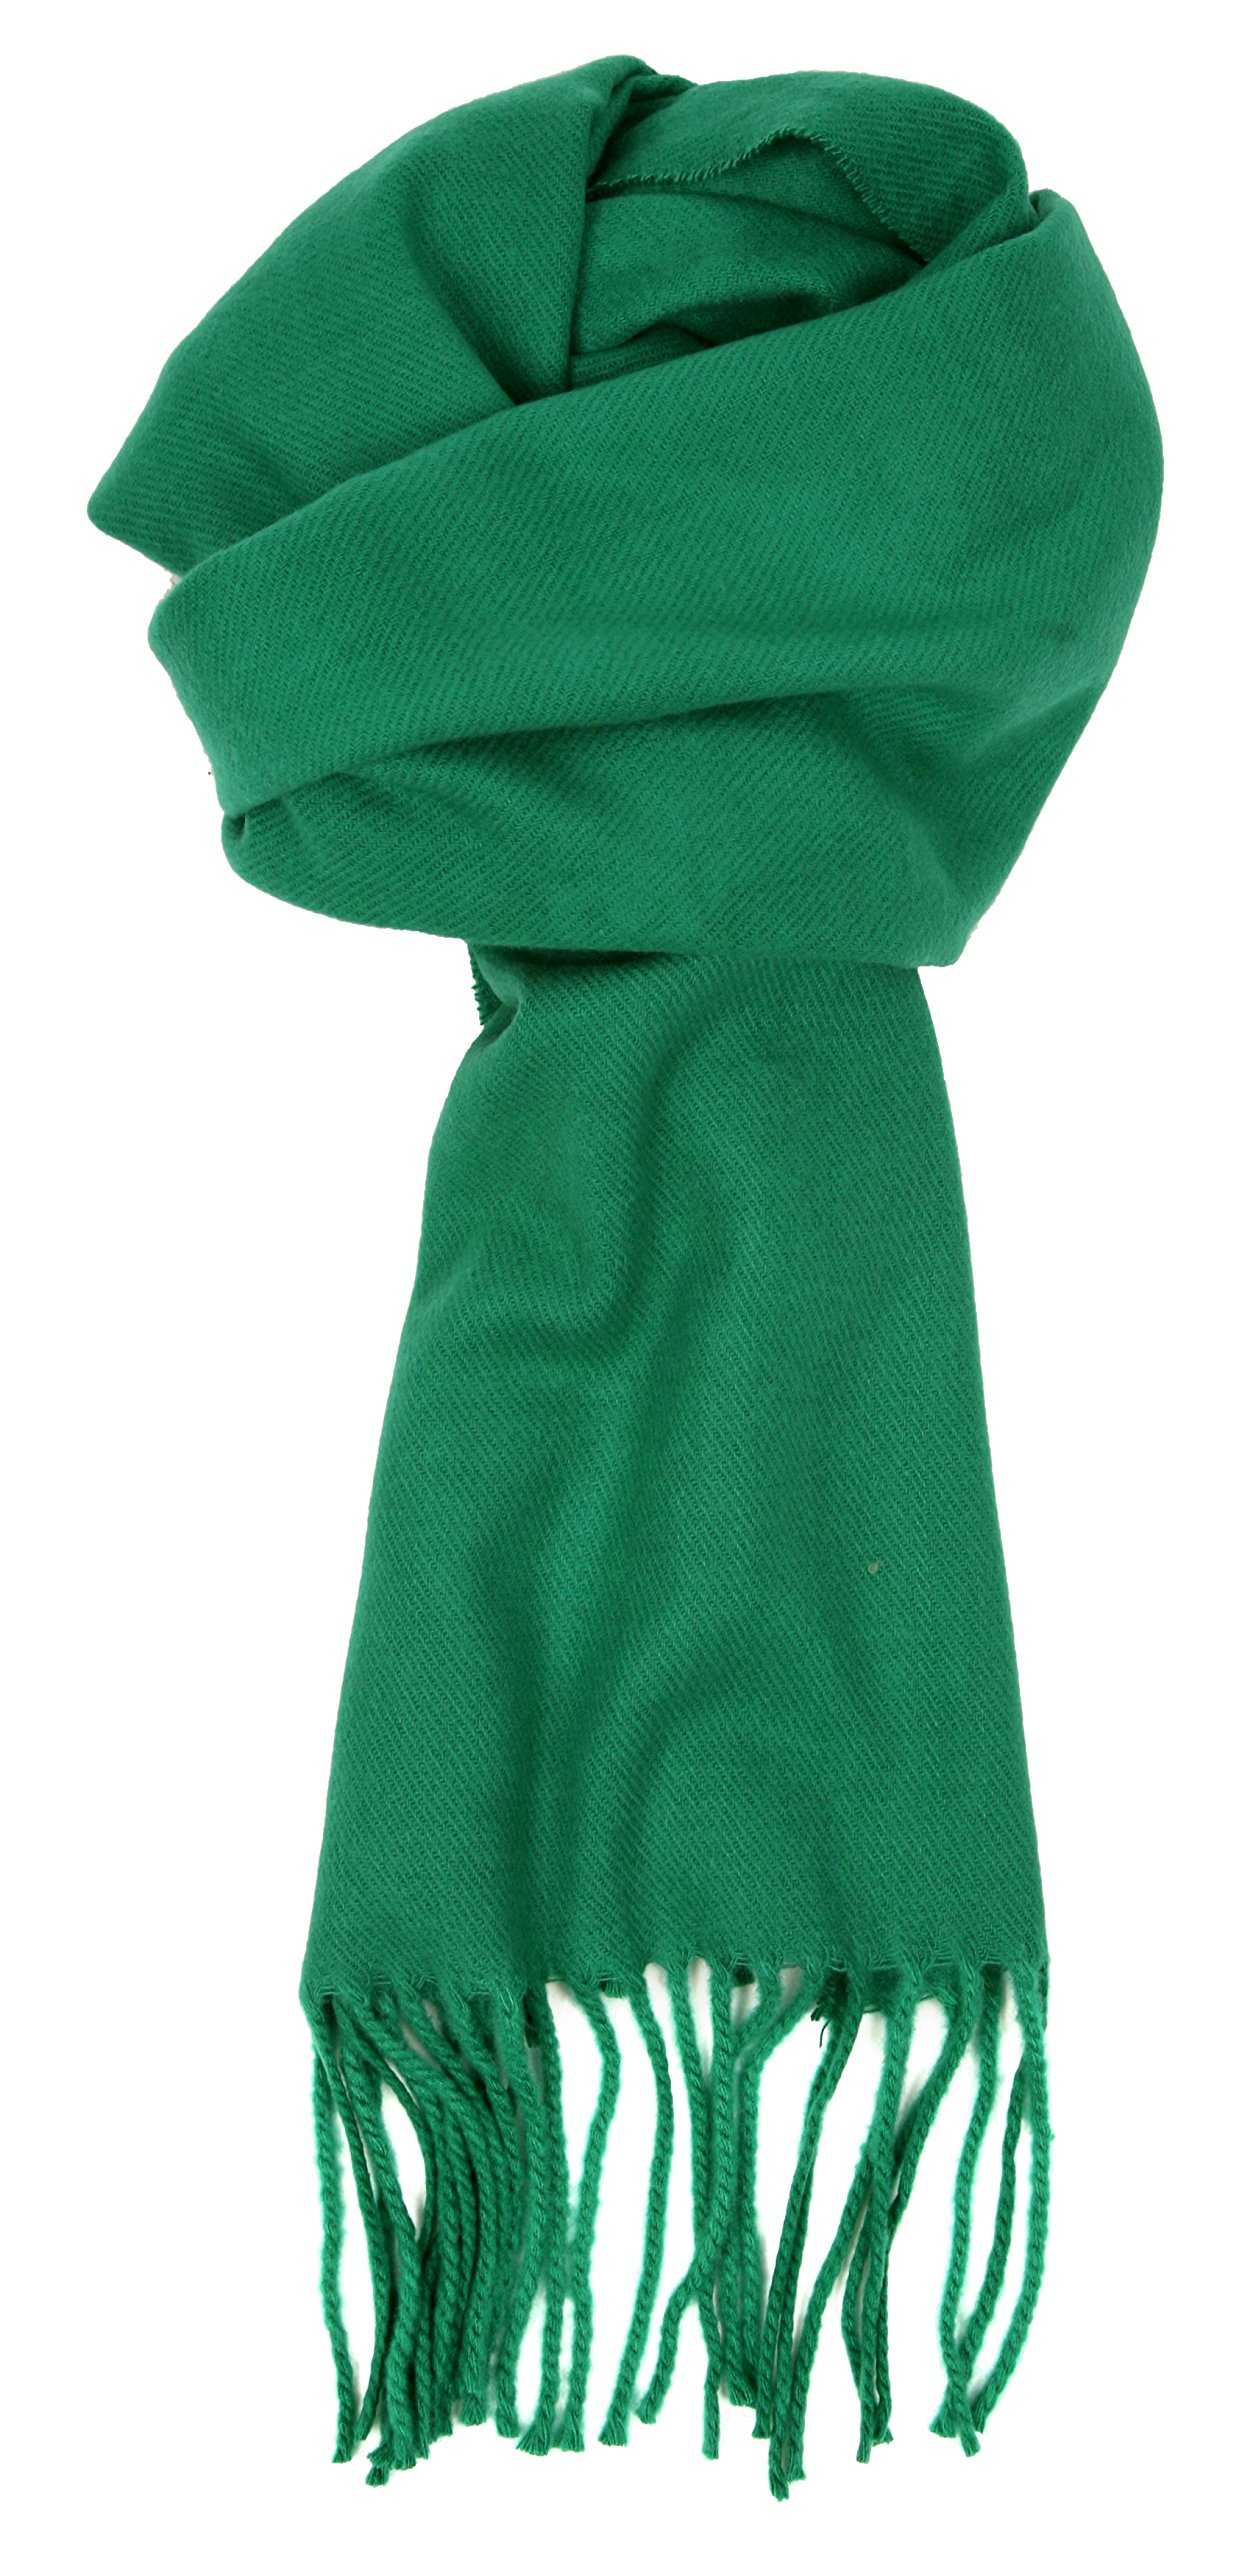 Love Lakeside-Women's Cashmere Feel Winter Solid Color Scarf 0-Kelly Green